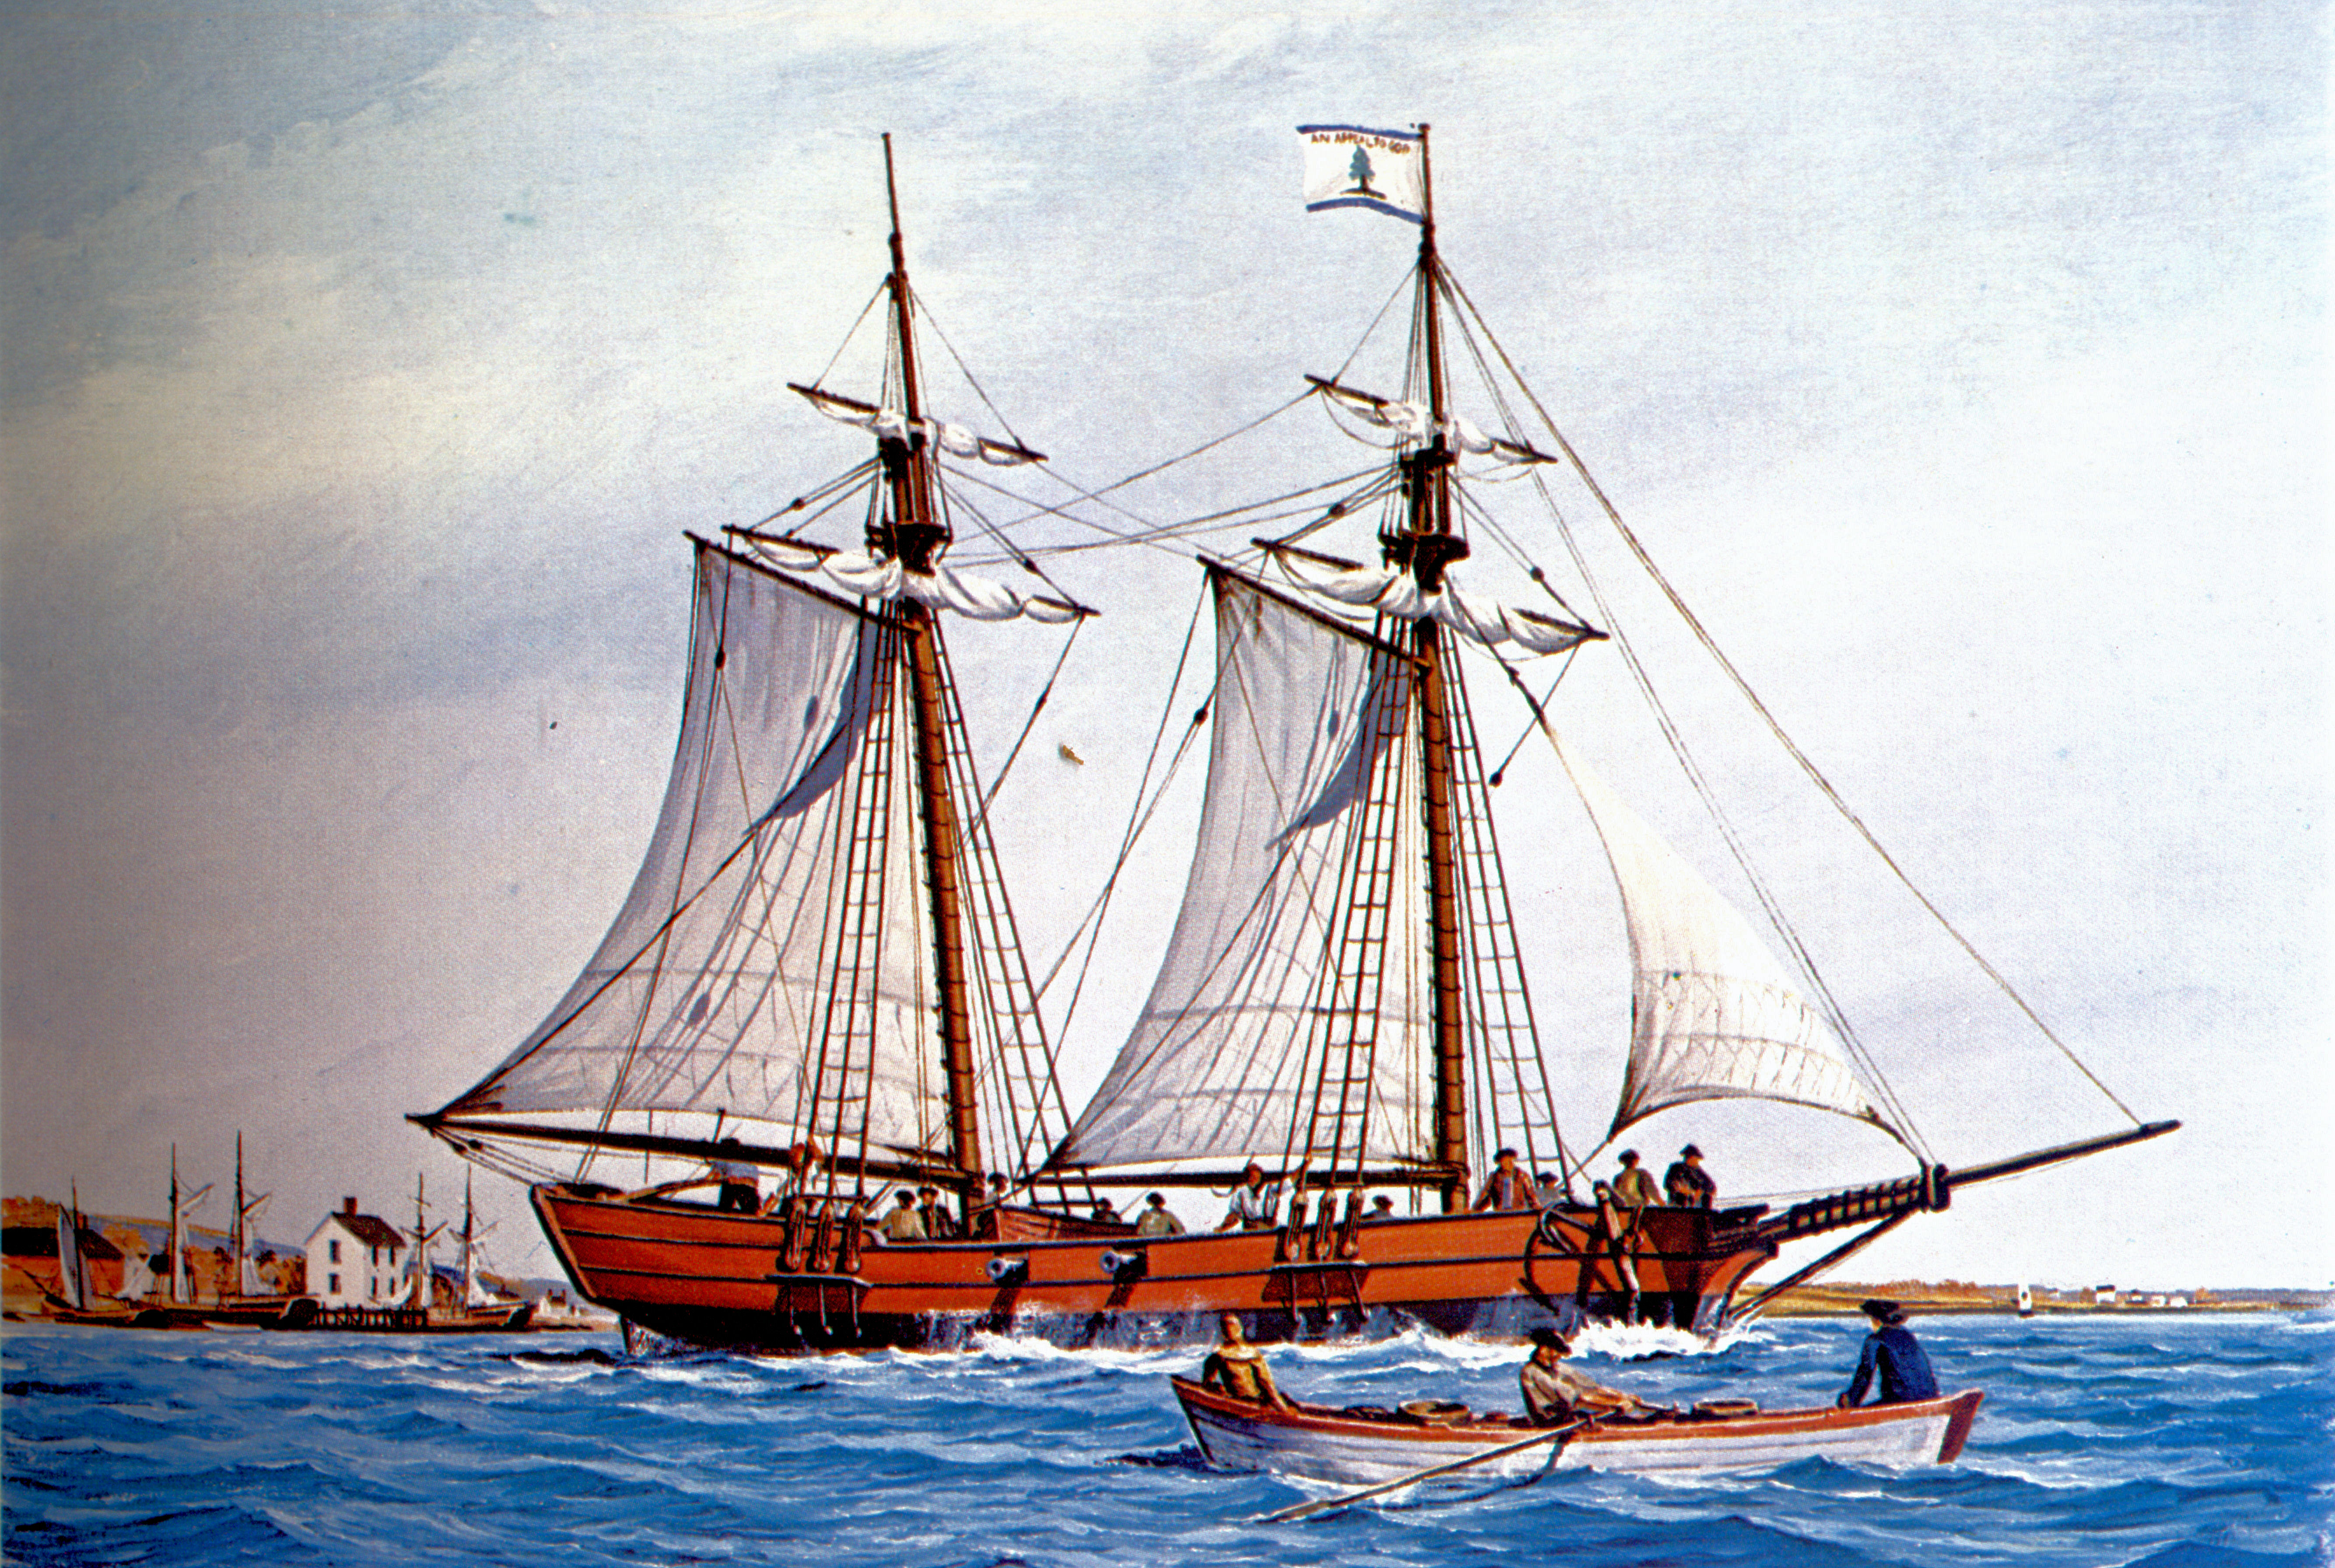 Continental Army Schooner Hannah sailing on patrol from Marblehead, Massachusetts. A modern painting by Nowland Van Powell. Hannah is a conjectural reconstruction based on typical vessels of the period. From Van Powell, The American Navies of the Revolutionary War